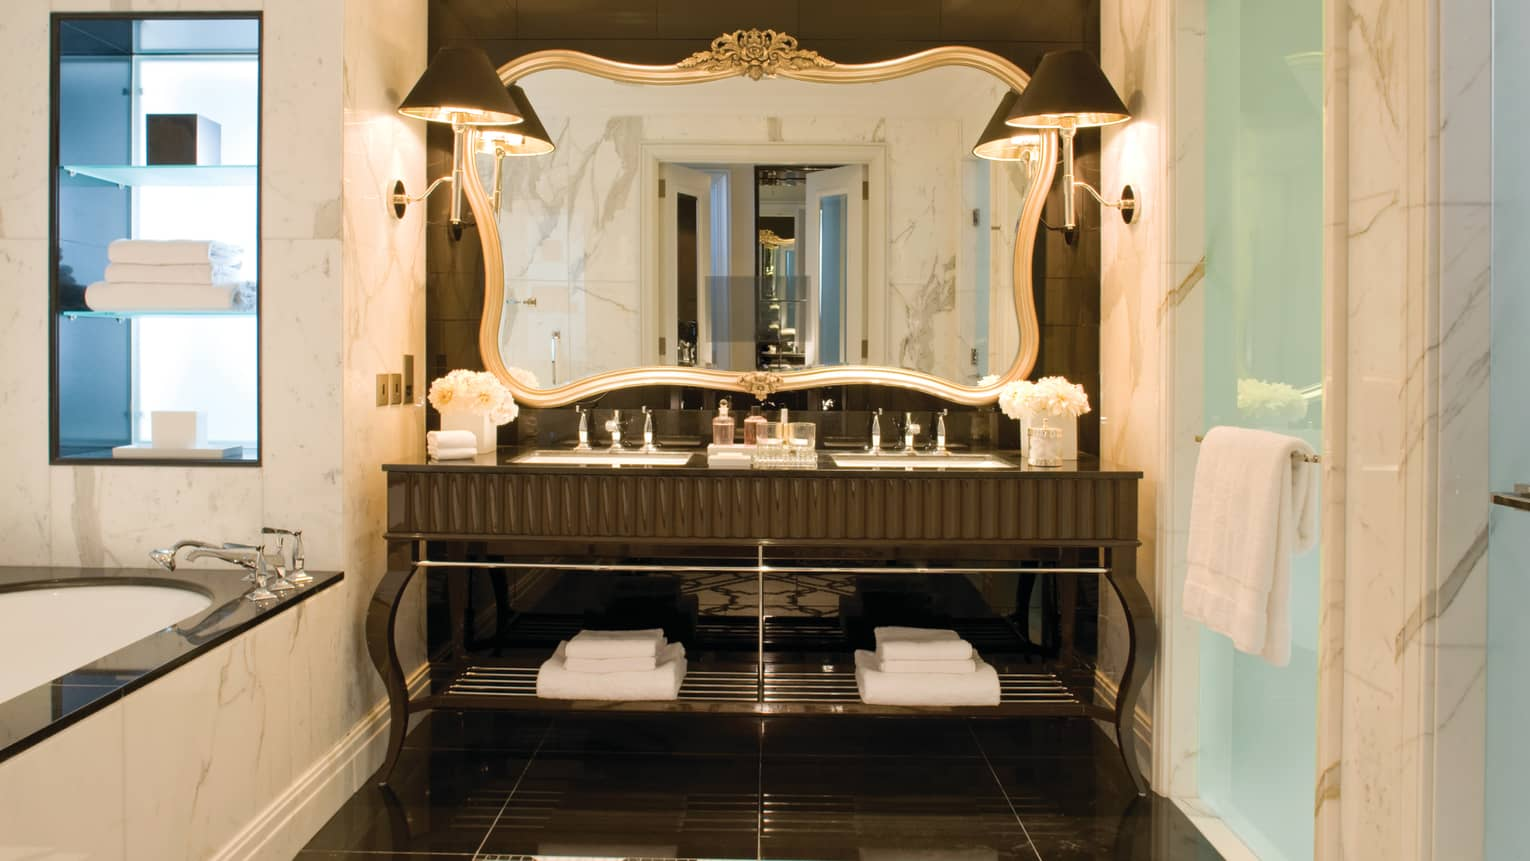 Large hotel bathroom vanity with double sink, tall mirror with gold frame, corner of marble bath visible